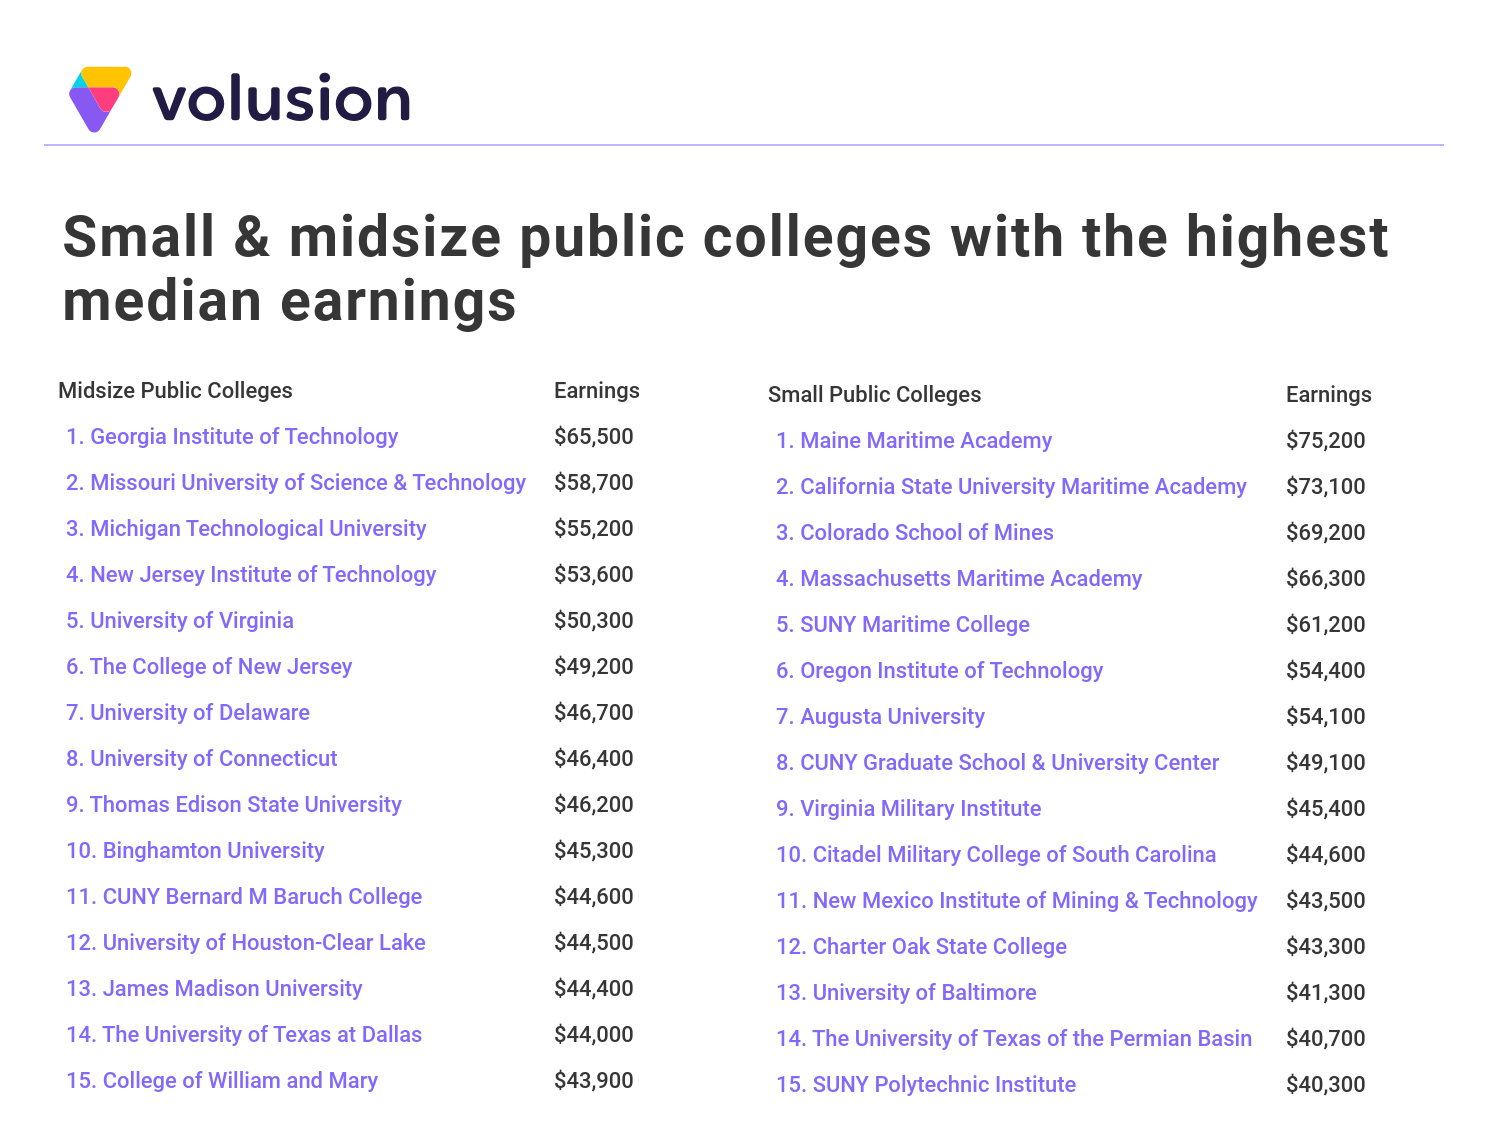 Small and midsized colleges with the highest median earnings